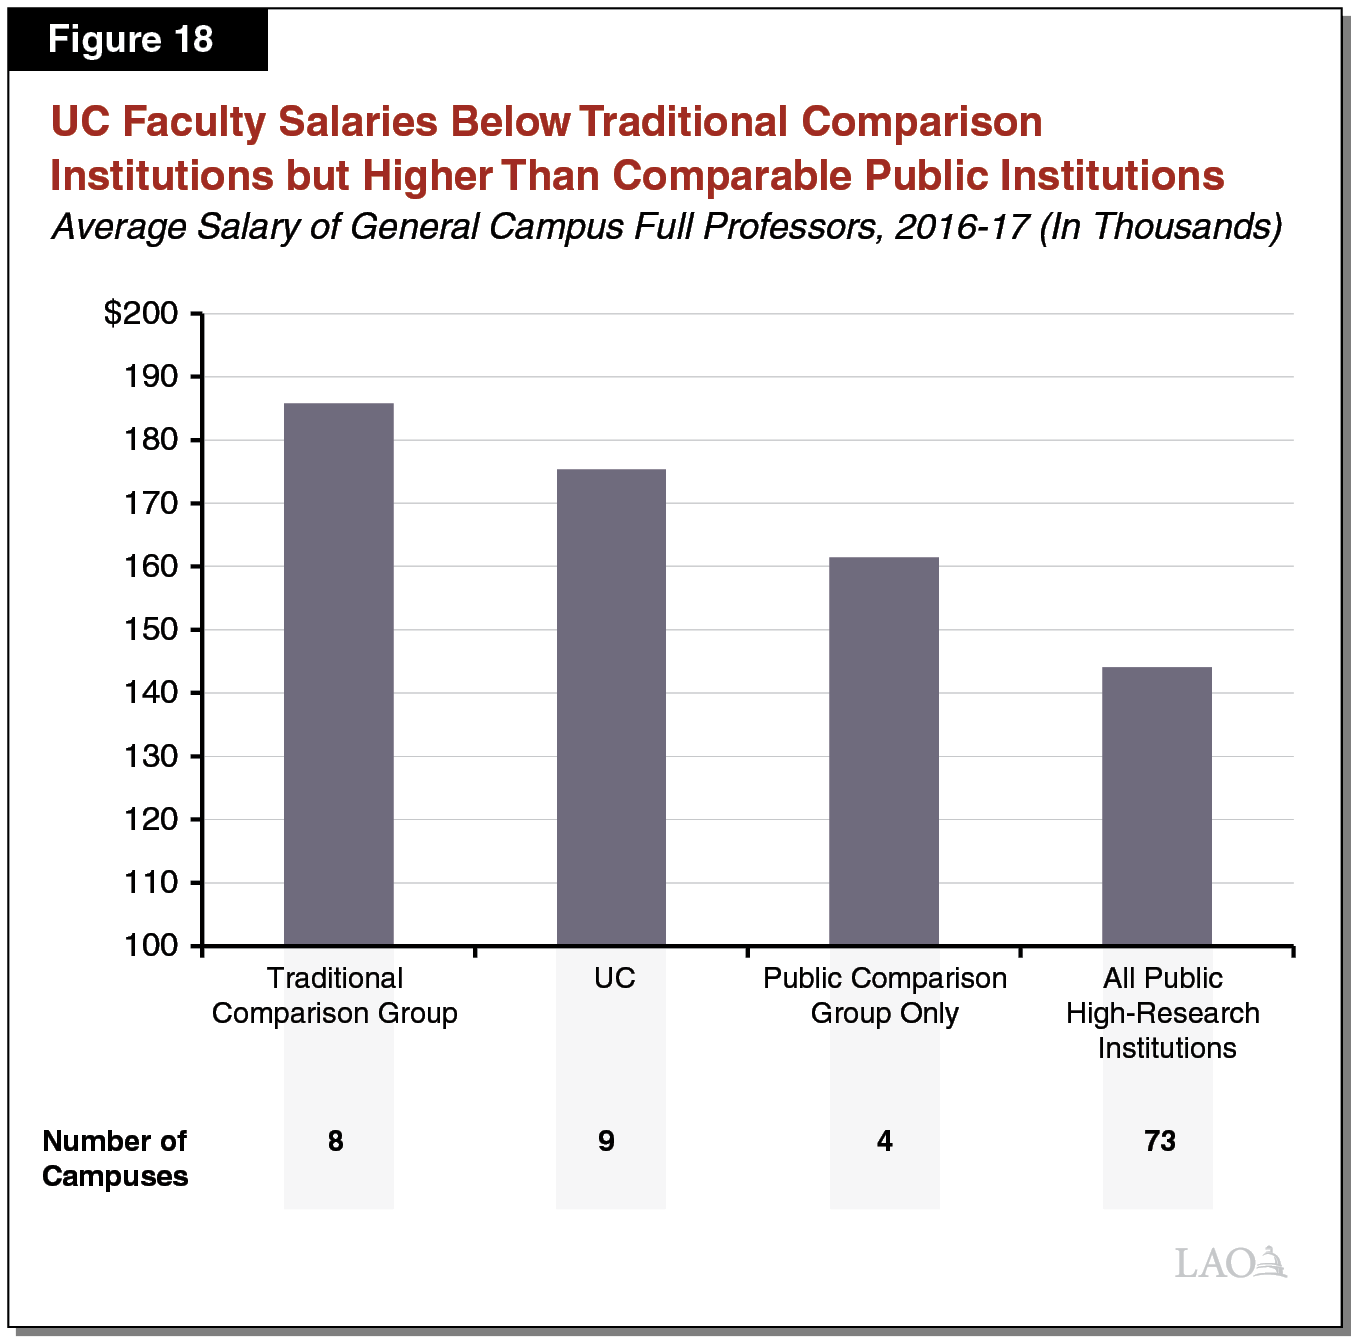 Figure 18 - UC Faculty Salaries Below Traditional Comparison Institutions but Higher Than Comparable Public Institutions